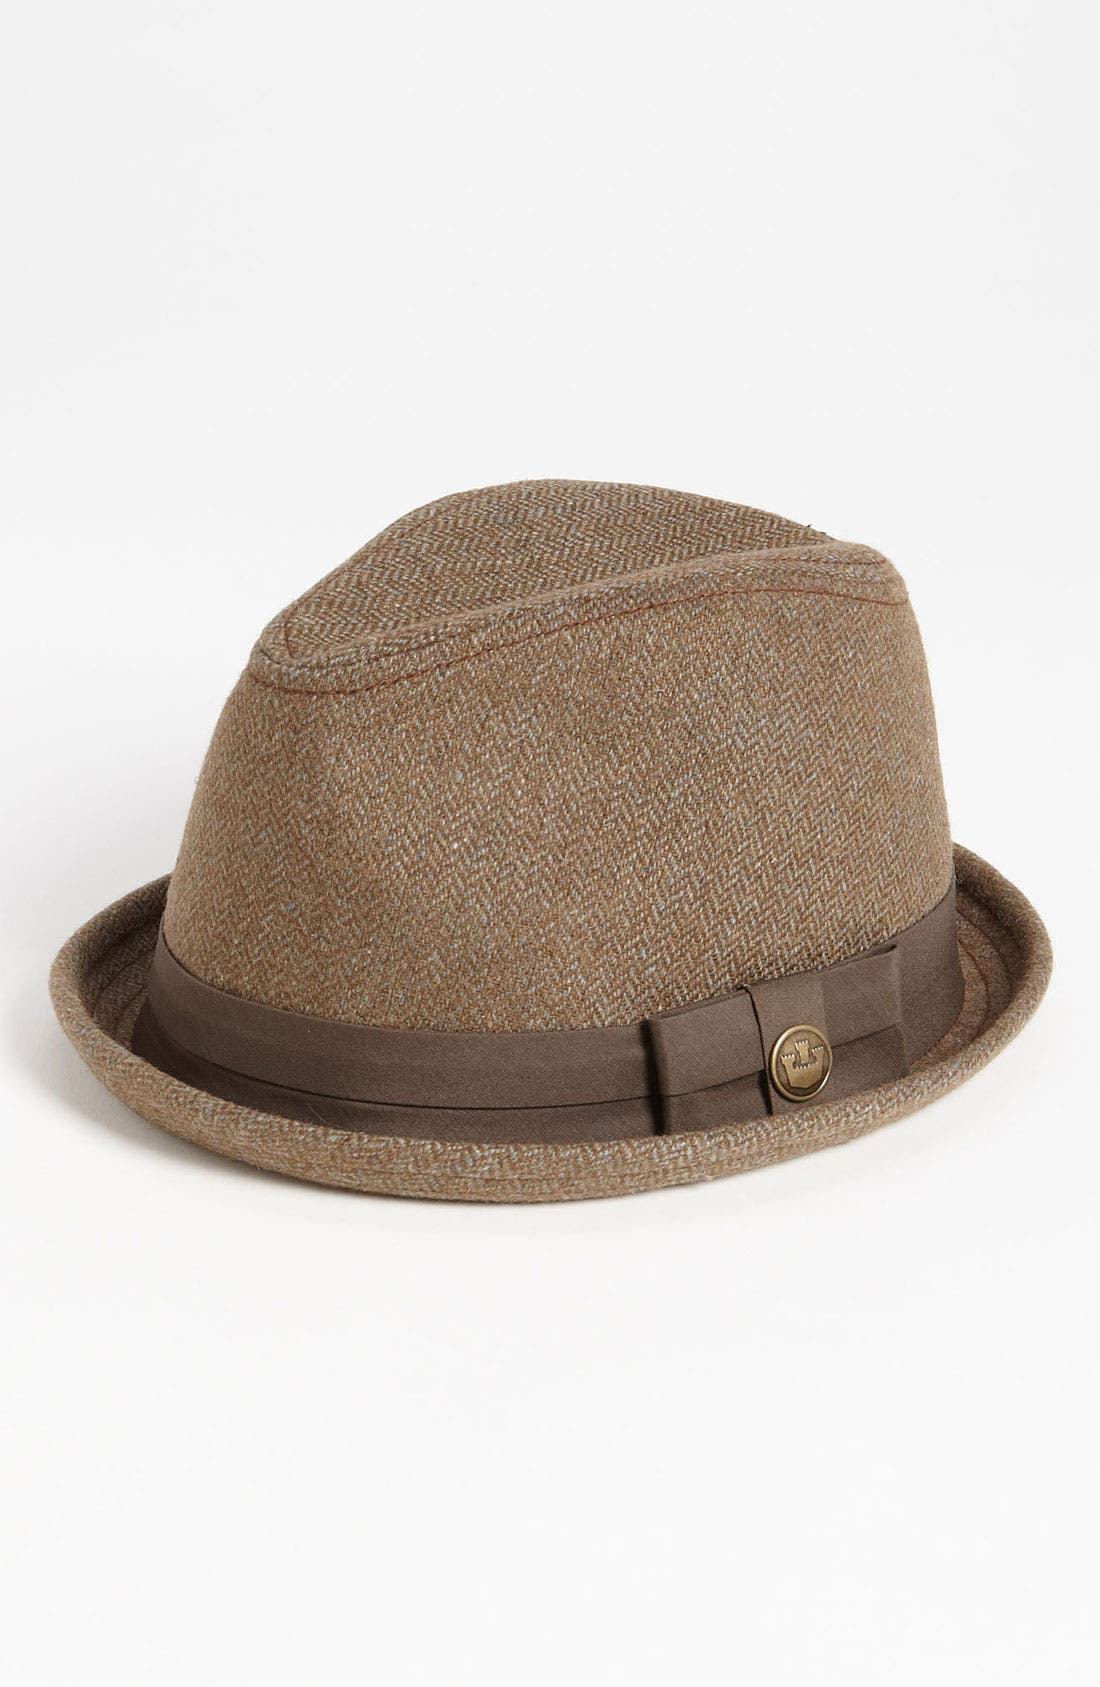 Alternate Image 1 Selected - Goorin Brothers 'Crawford' Fedora